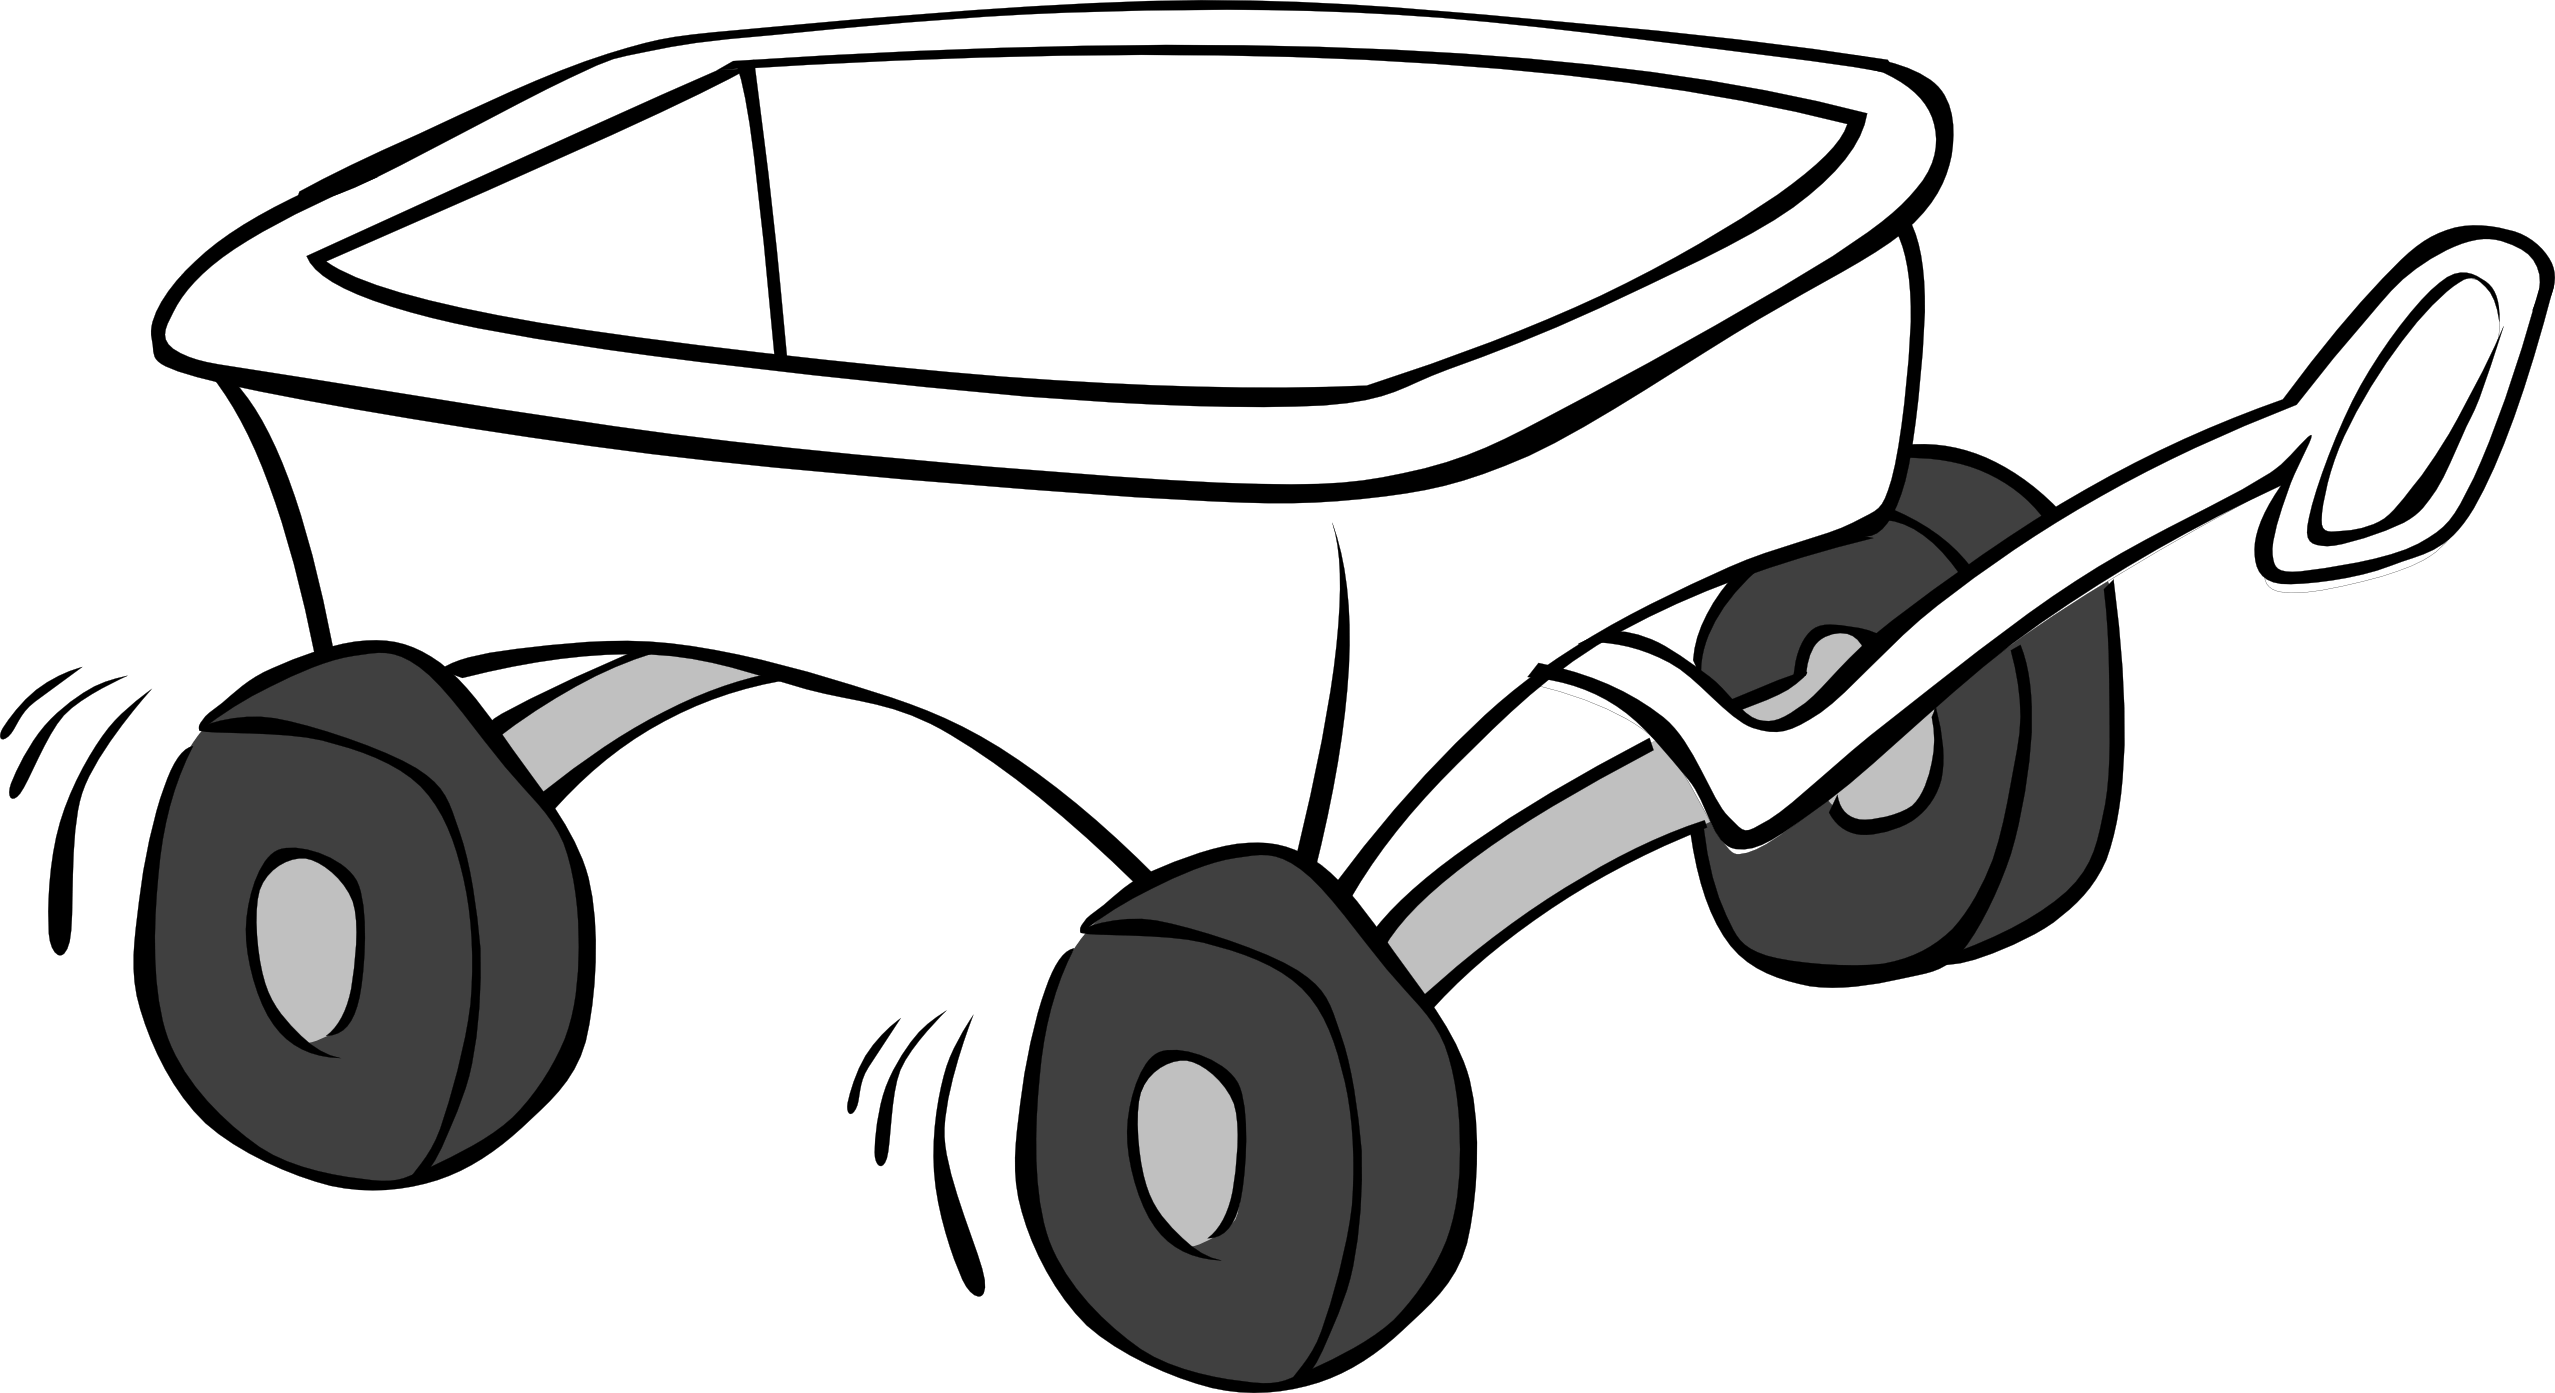 Covered coloring page free. Wagon clipart wagon oregon trail